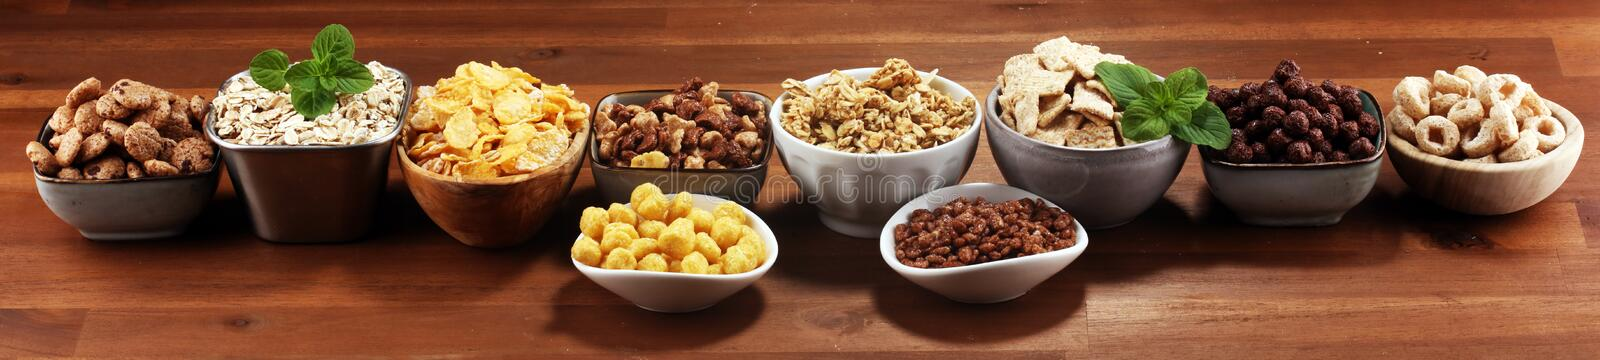 Cereal. Bowls of various cereals for breakfast. Muesli with kids cereals. Cereal. Bowls of various cereals for breakfast. Muesli with variety of kids cereals stock photography